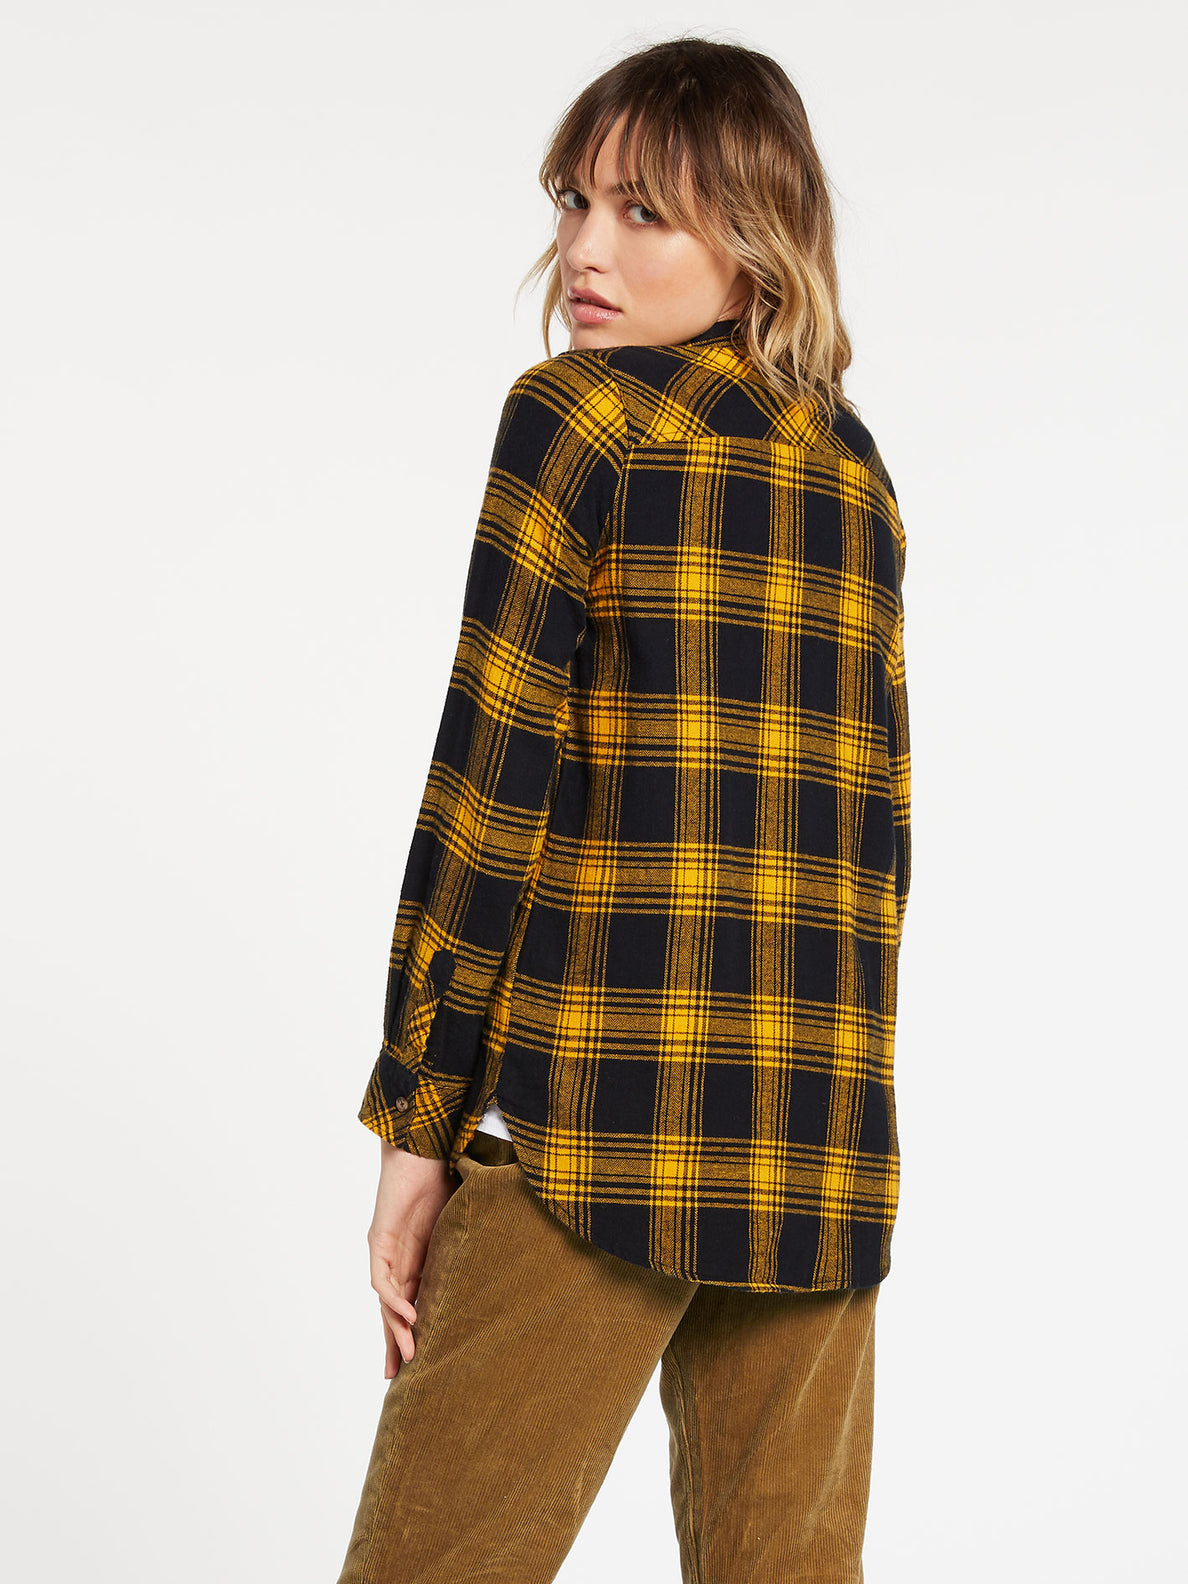 Getting Rad Plaid Long Sleeve  Flannel - Golden Haze (B0531800_GDH) [B]